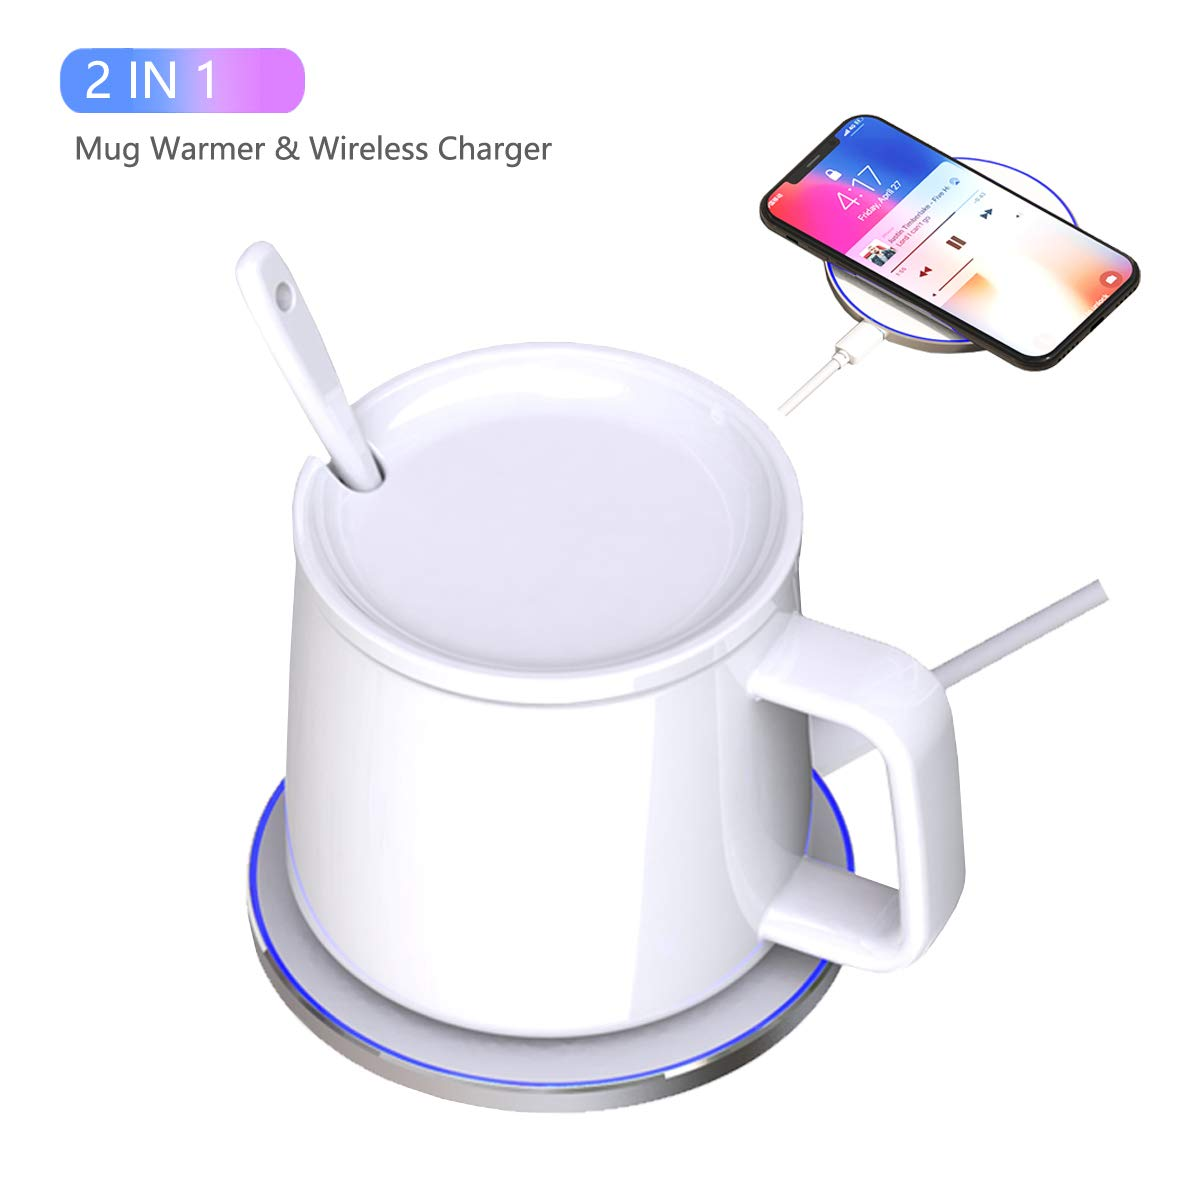 Coffee Mug Warmer, SUDISER 2019 New High-end Bone china Mug Warmer with Wireless Charger, Constant Temperature about 122 F 50 C for Home, Office Use and Platinum Gift